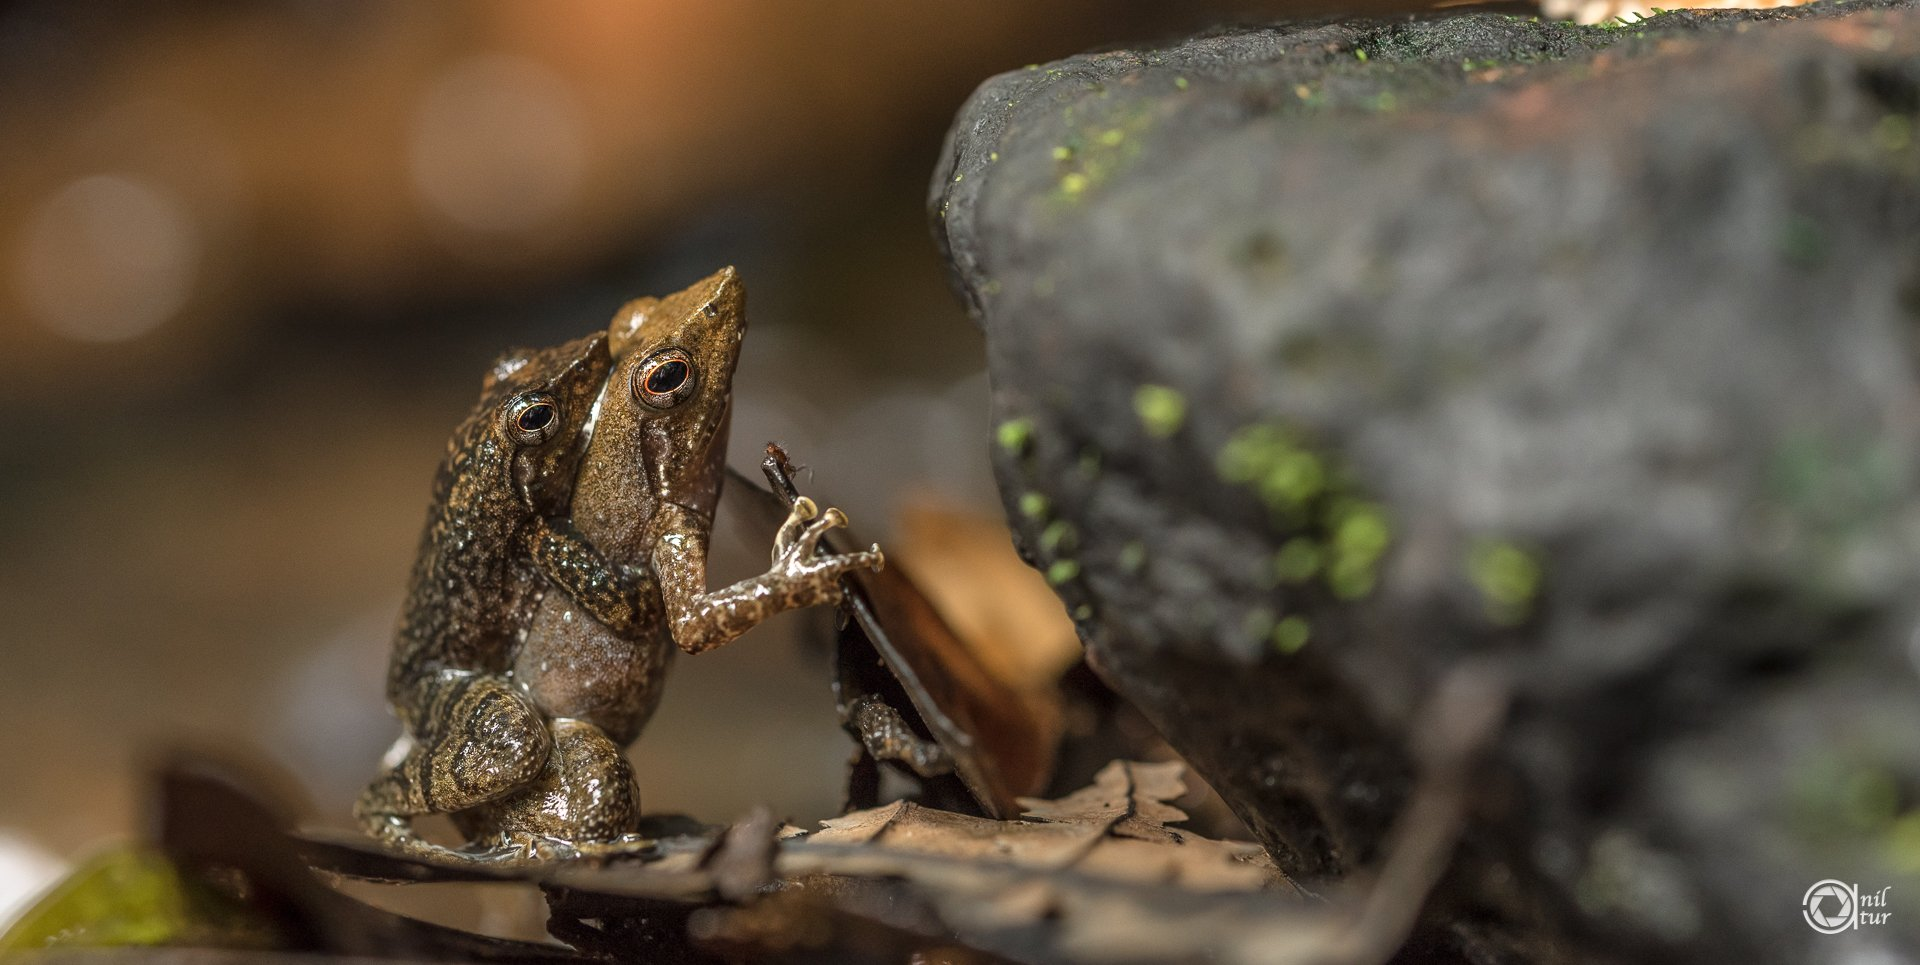 Dancing-frogs-amplexus-agumbe-anil